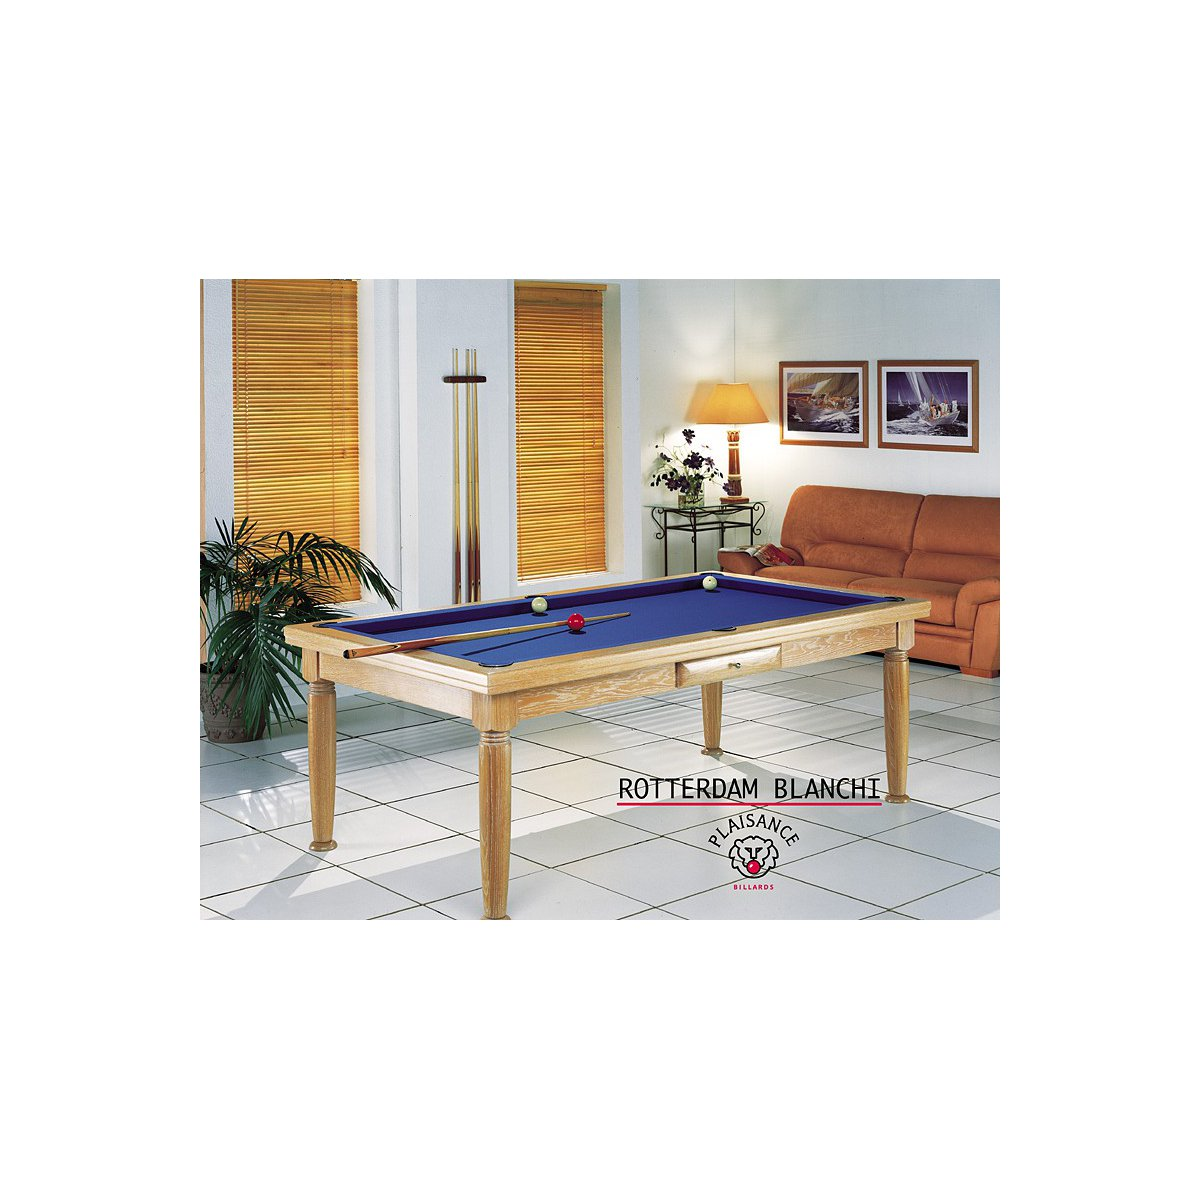 billard table a manger rotterdam en finition blanchi n19